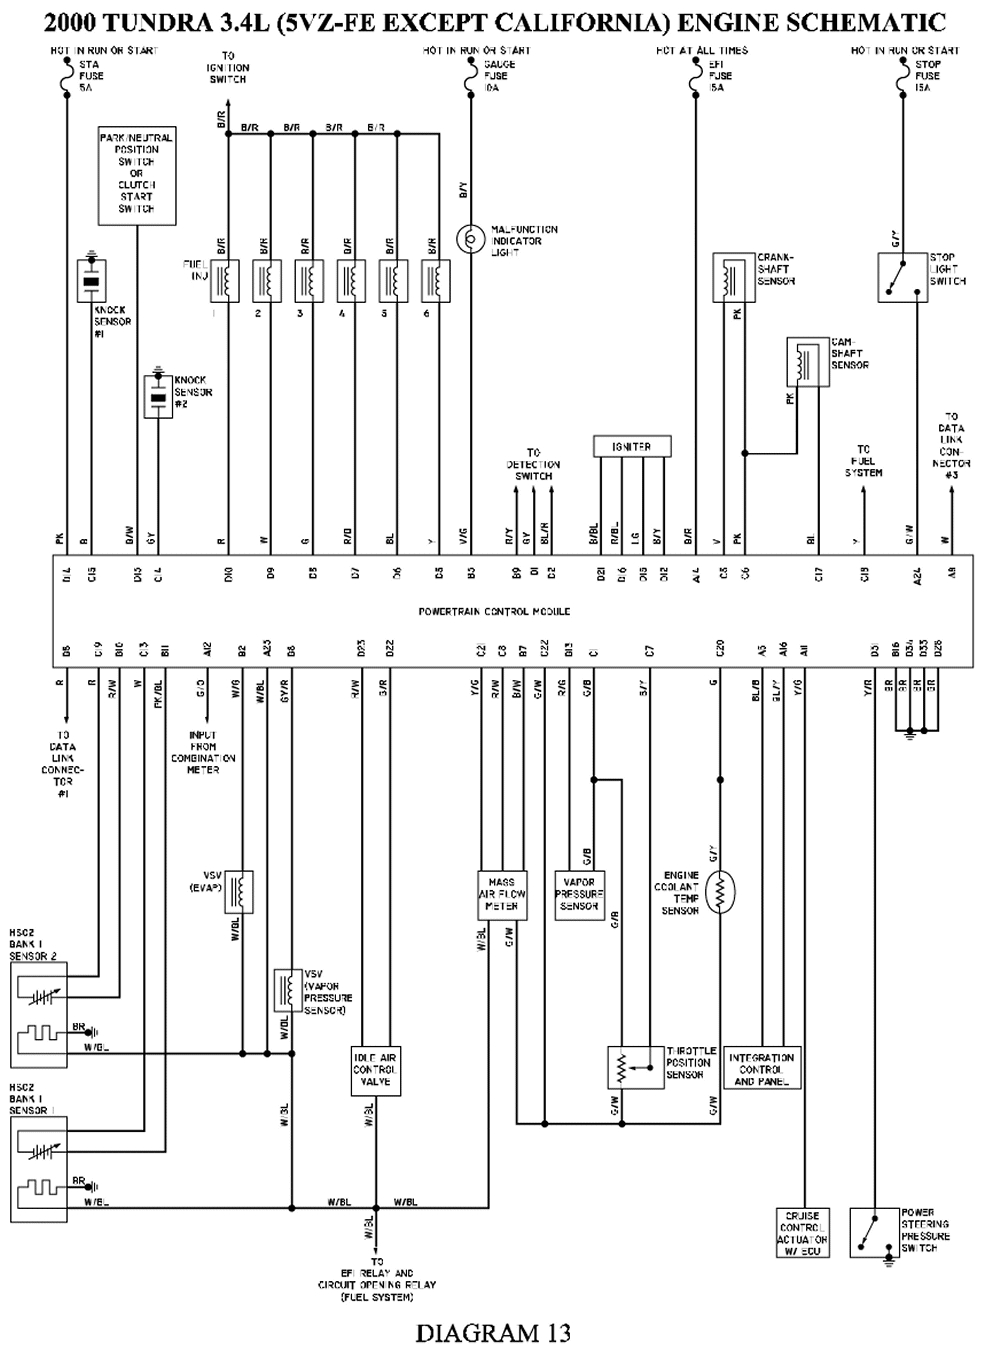 2007 toyota Tacoma Wiring Diagram 3f1 Installation Of A Trailer Wiring Harness On 2000